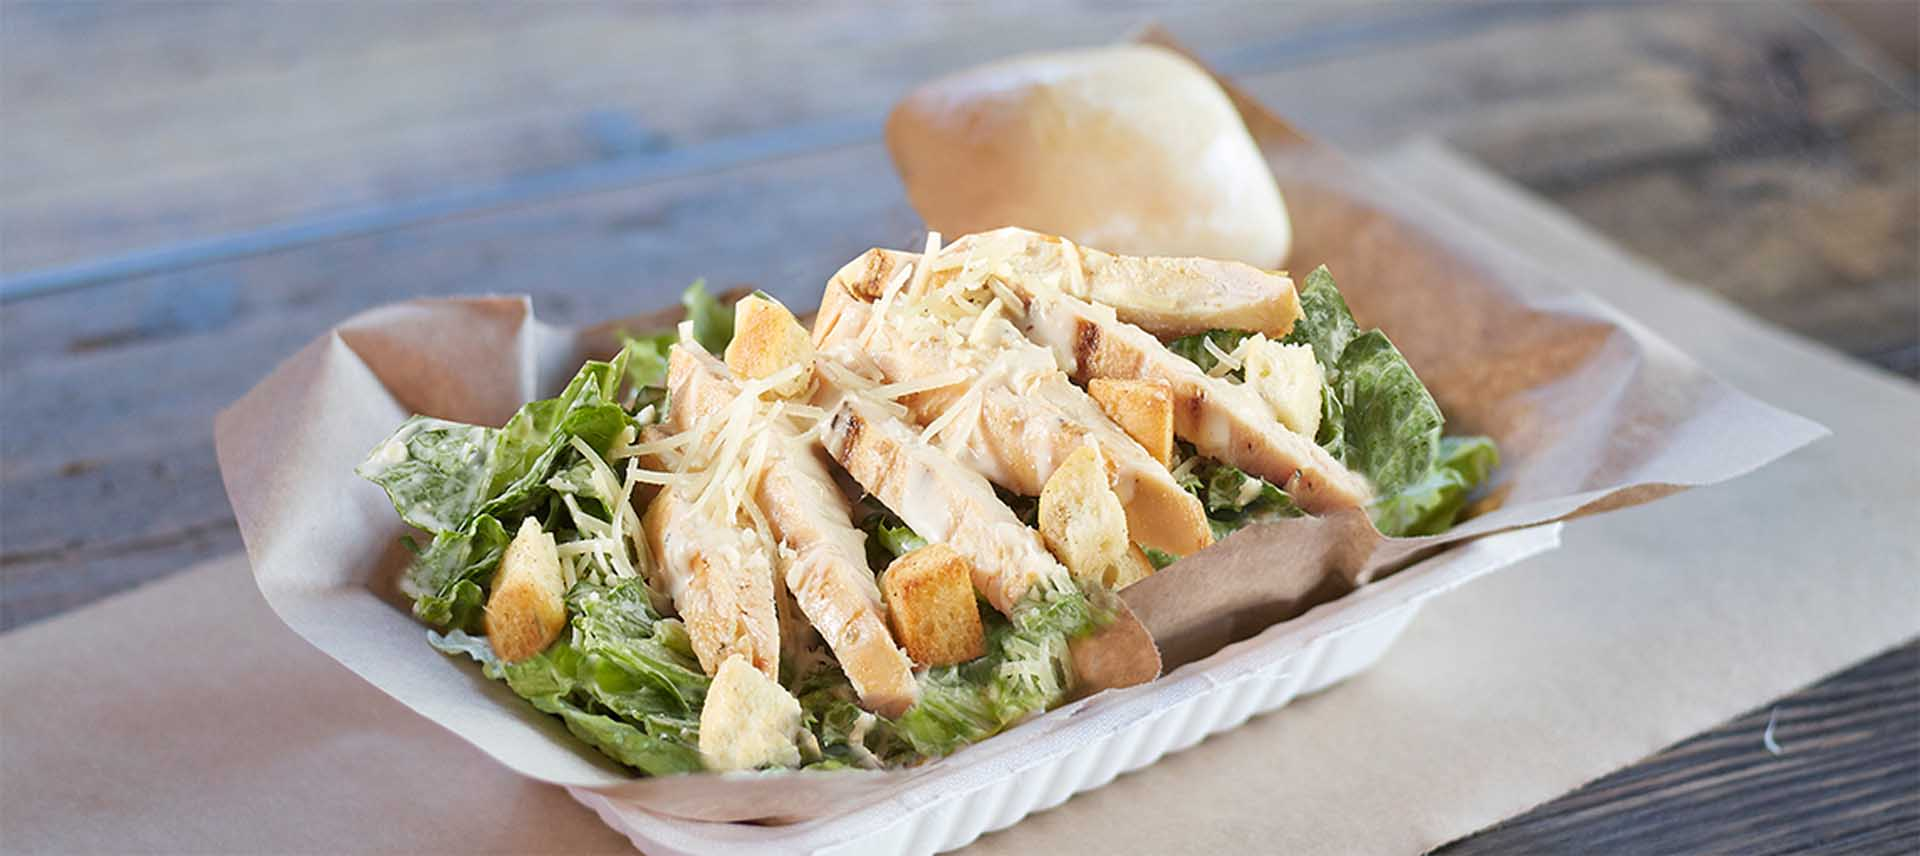 Caesar Salad with Meat